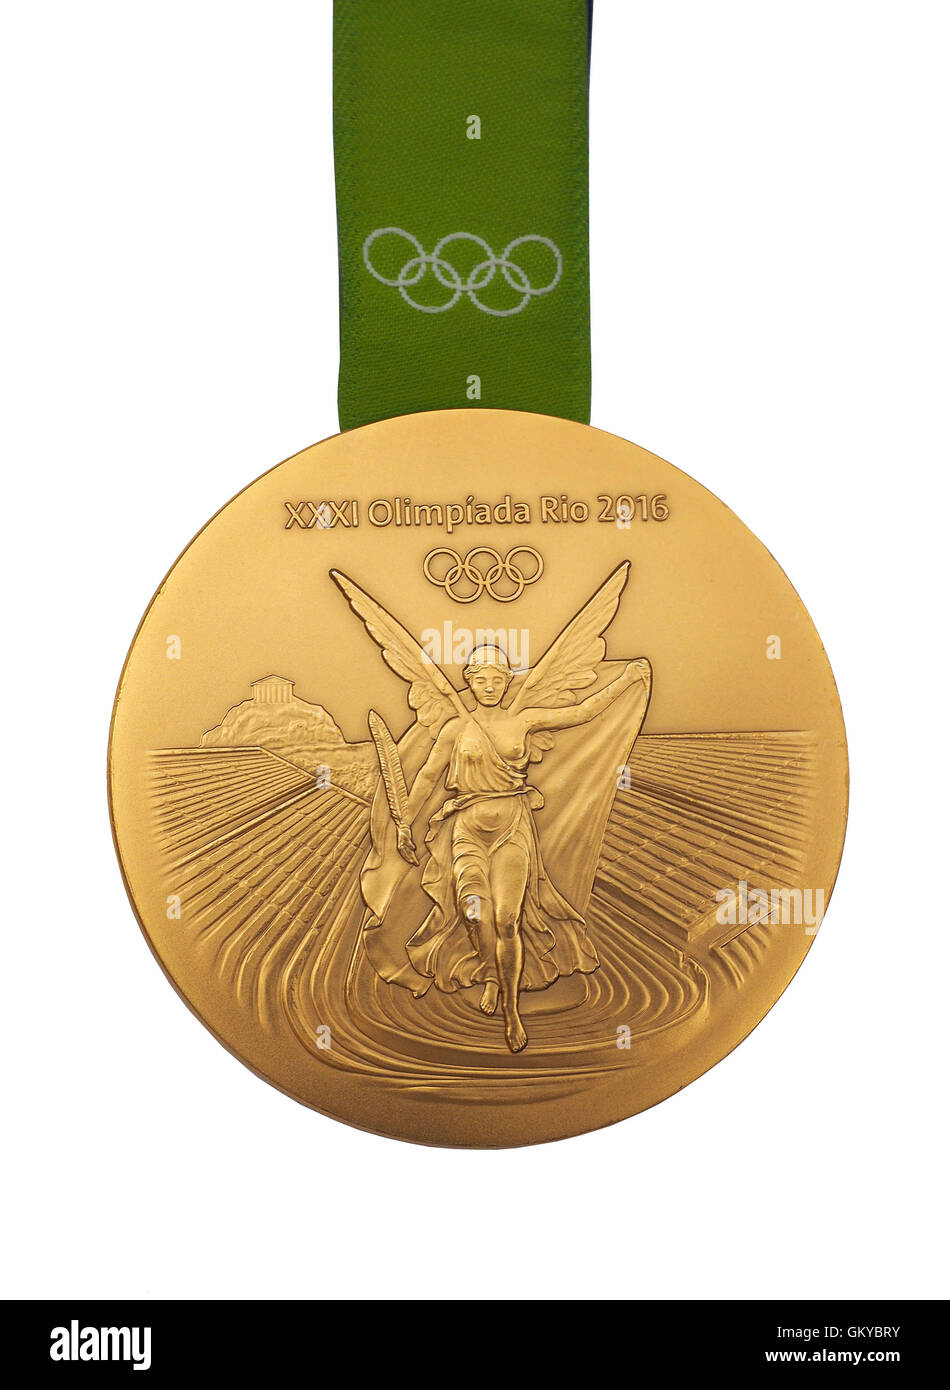 Gold medal from Rio 2016 Olympic Games - Stock Image